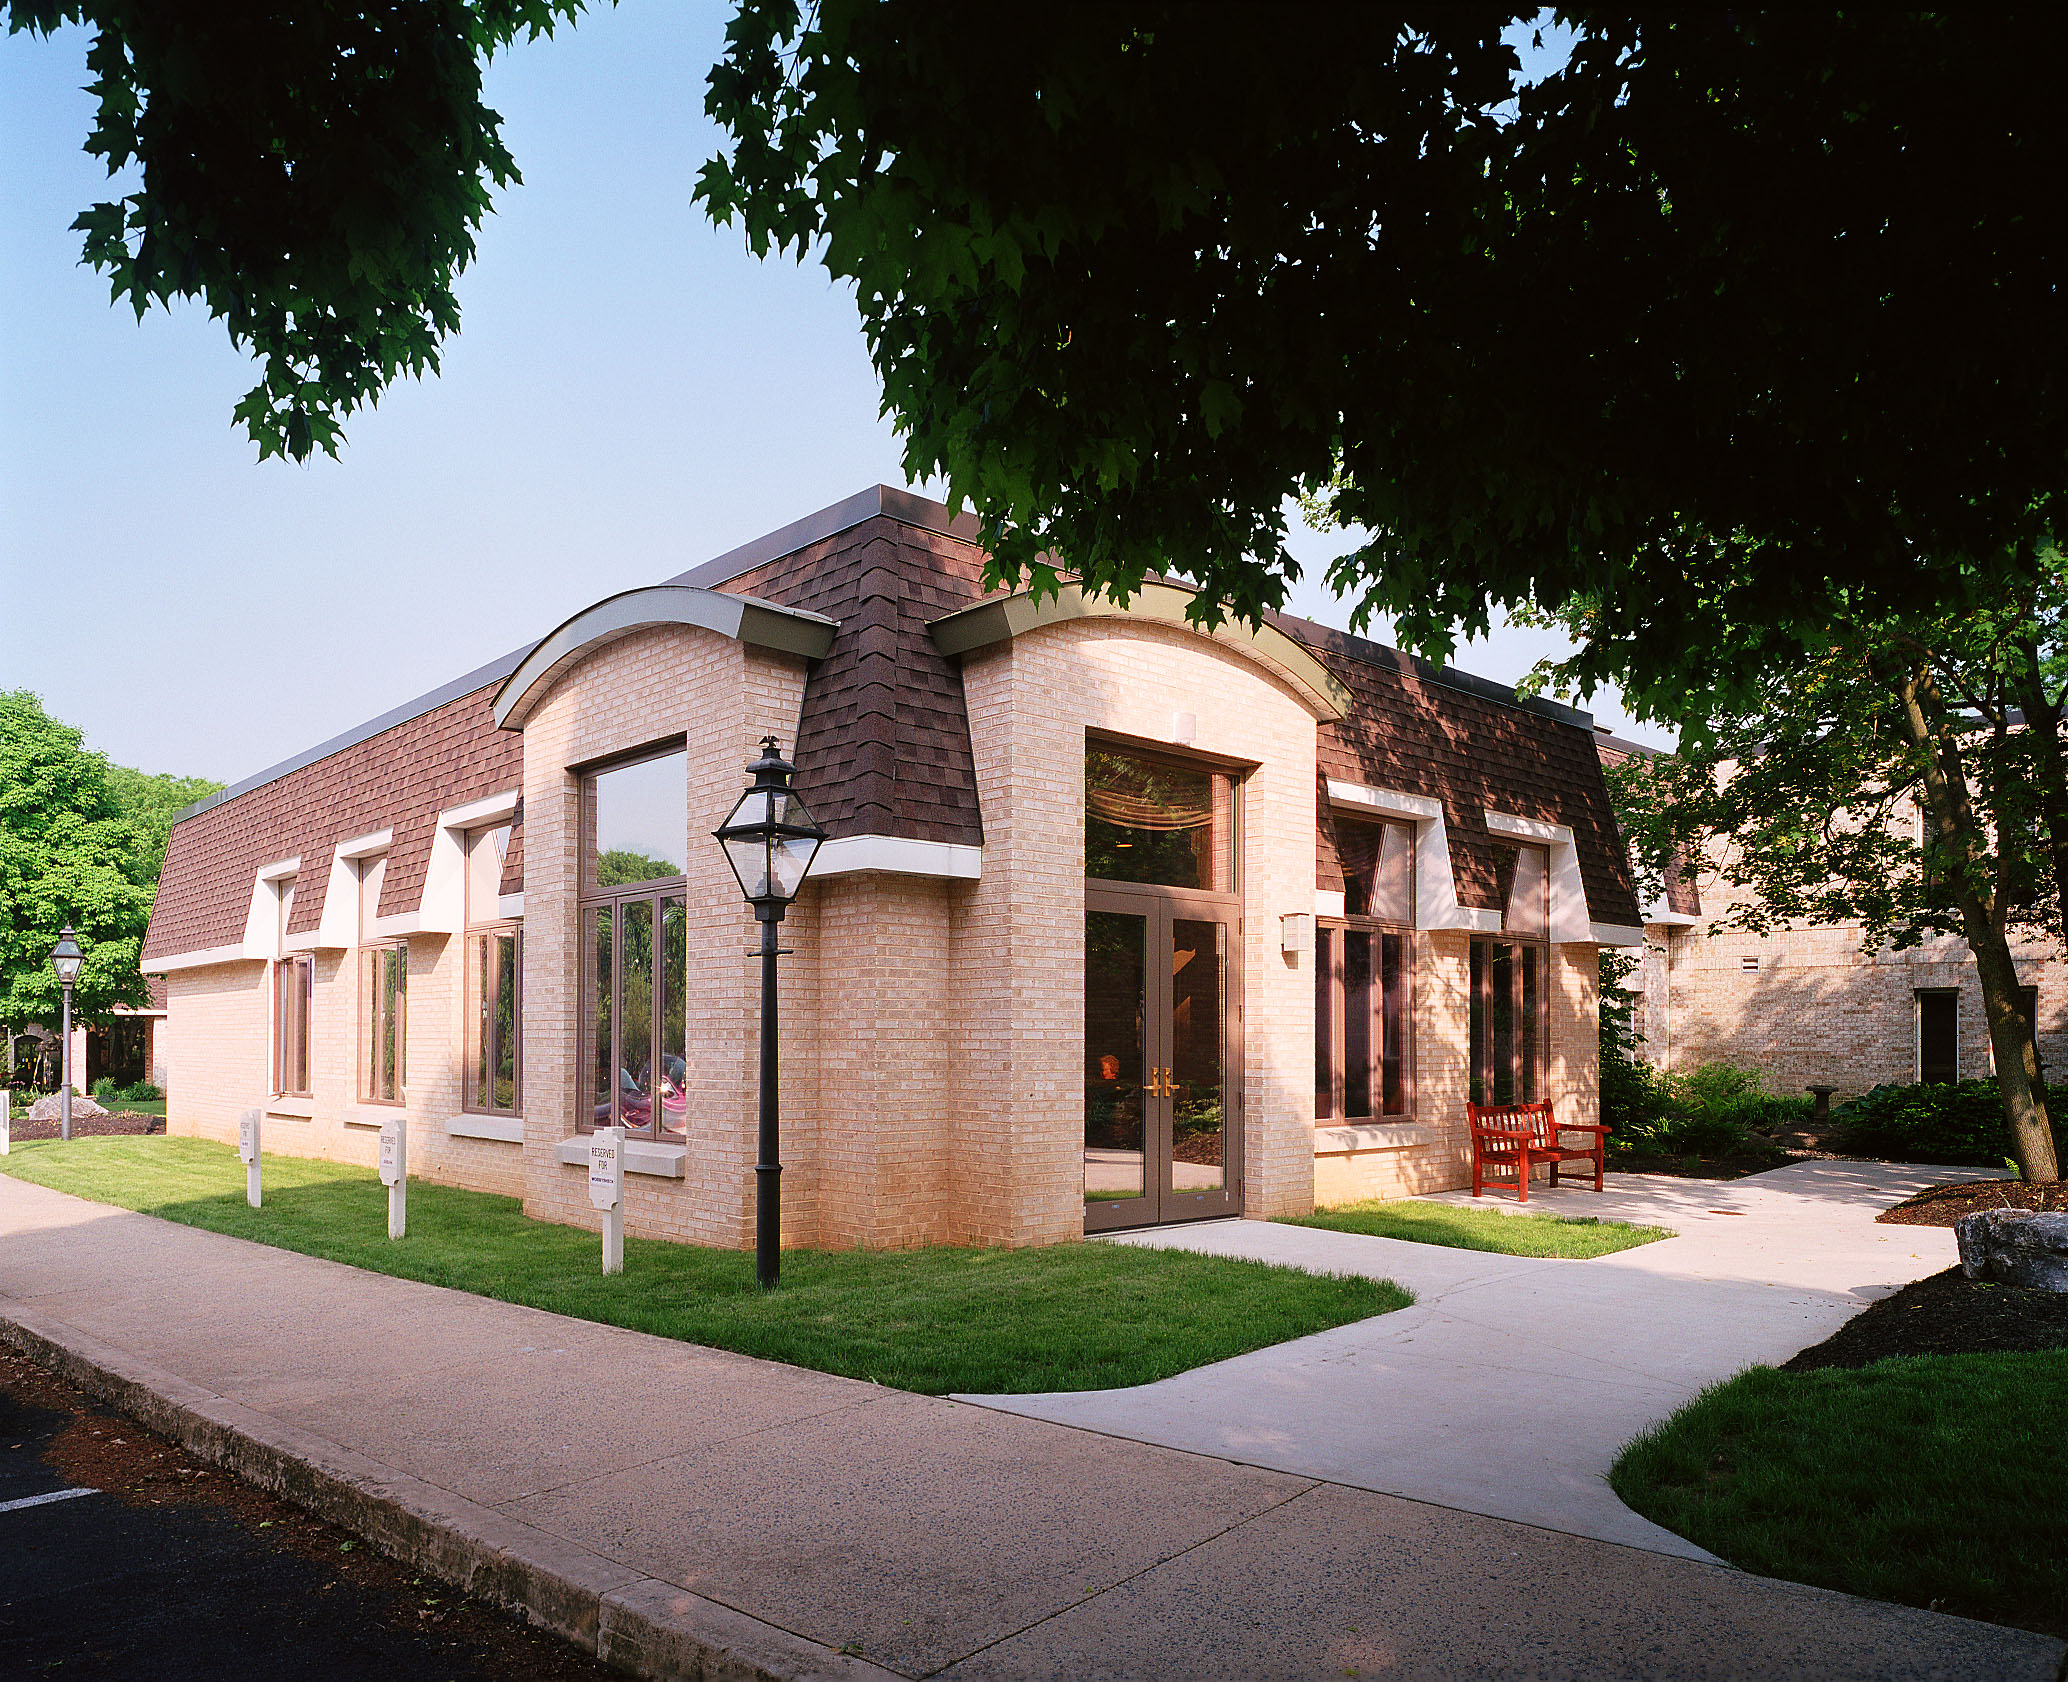 Moravian Manor Assisted Living Addition and Health Center Renovation - Retirement Communities